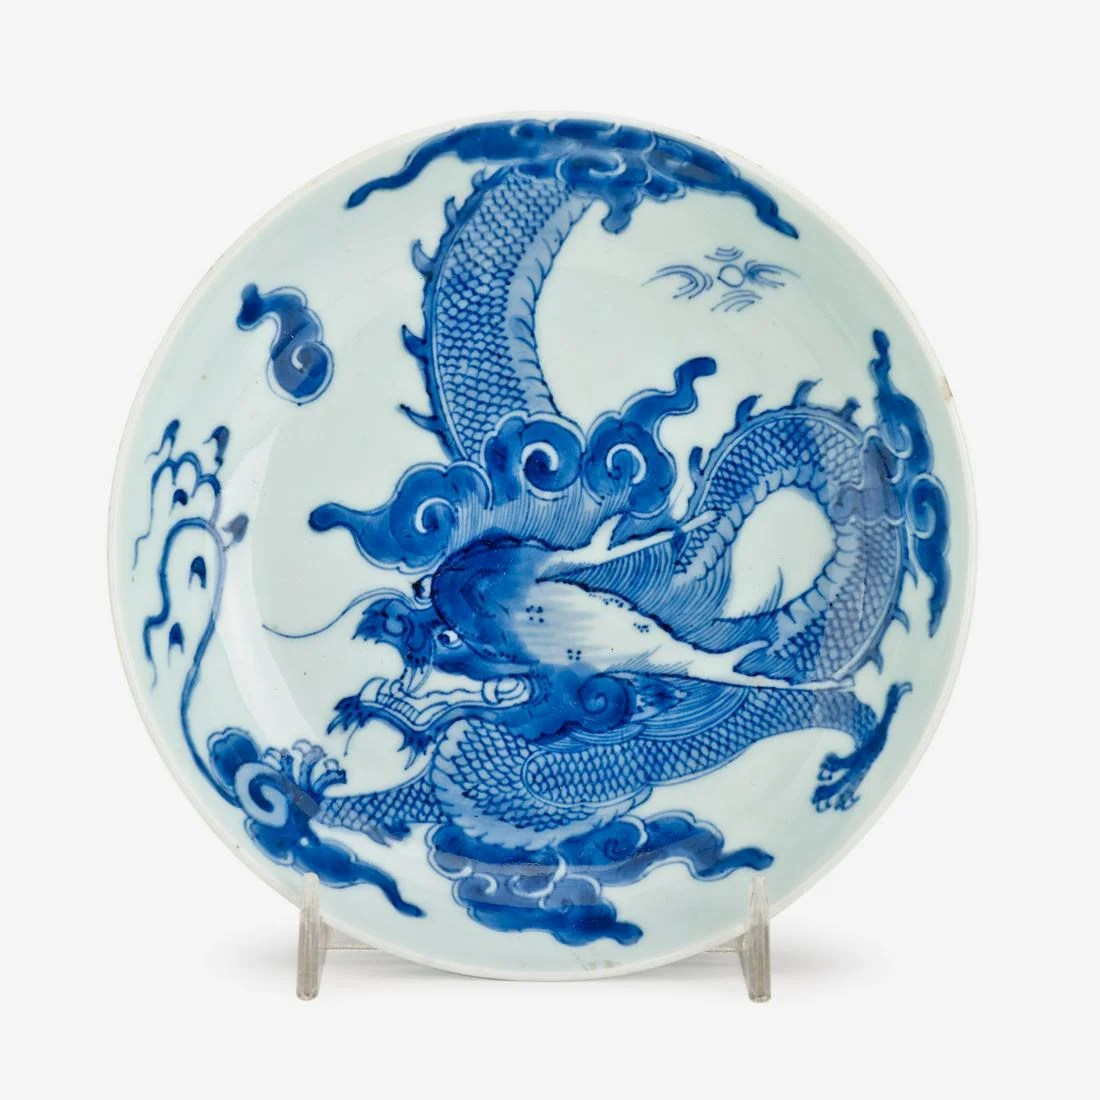 A small Chinese blue and white porcelain dragon plate,